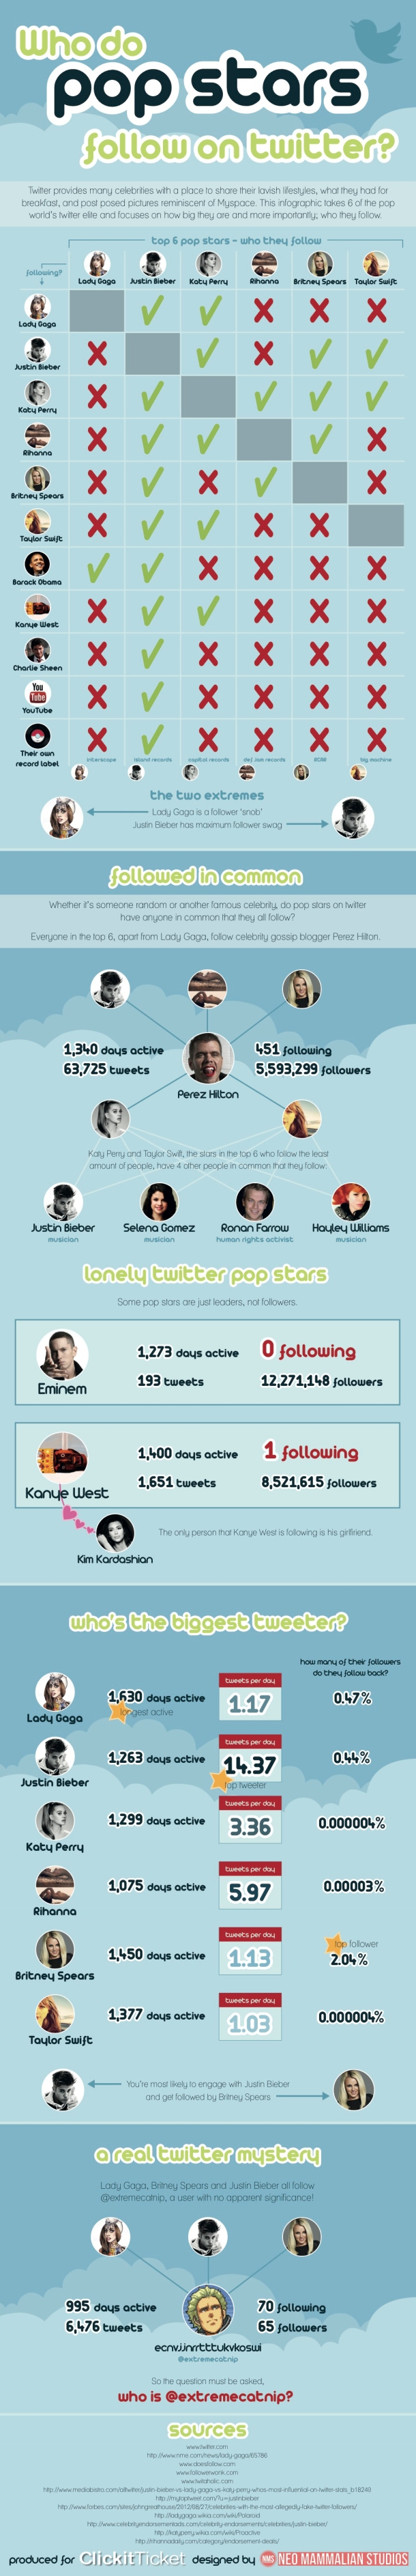 who-do-pop-stars-follow-on-twitter_506de46579596